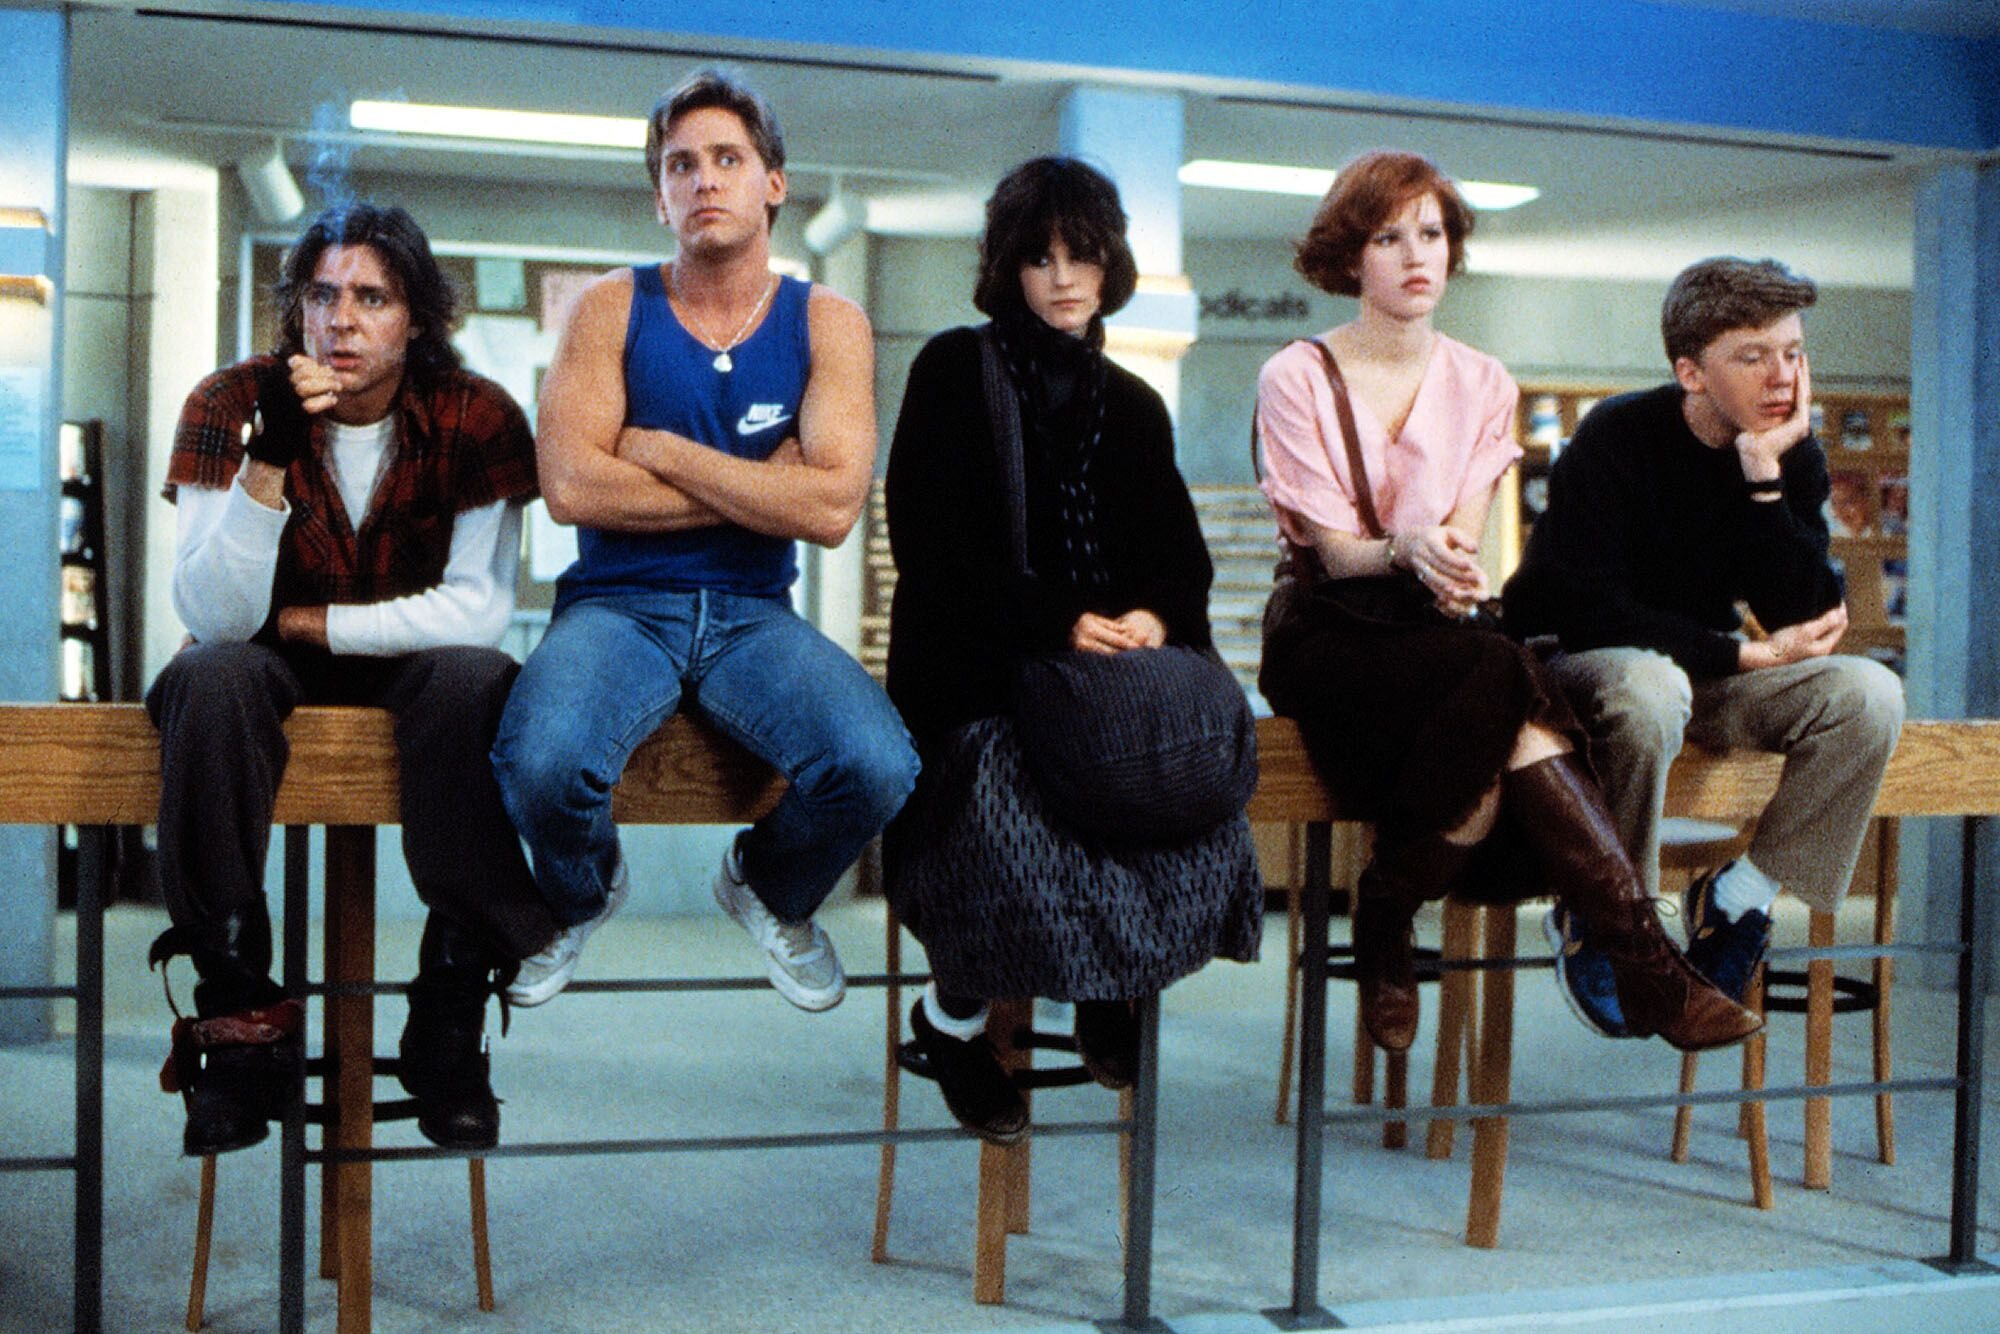 A criminal, an athlete, a basket case, a princess and a brain. Image credit: Universal Pictures